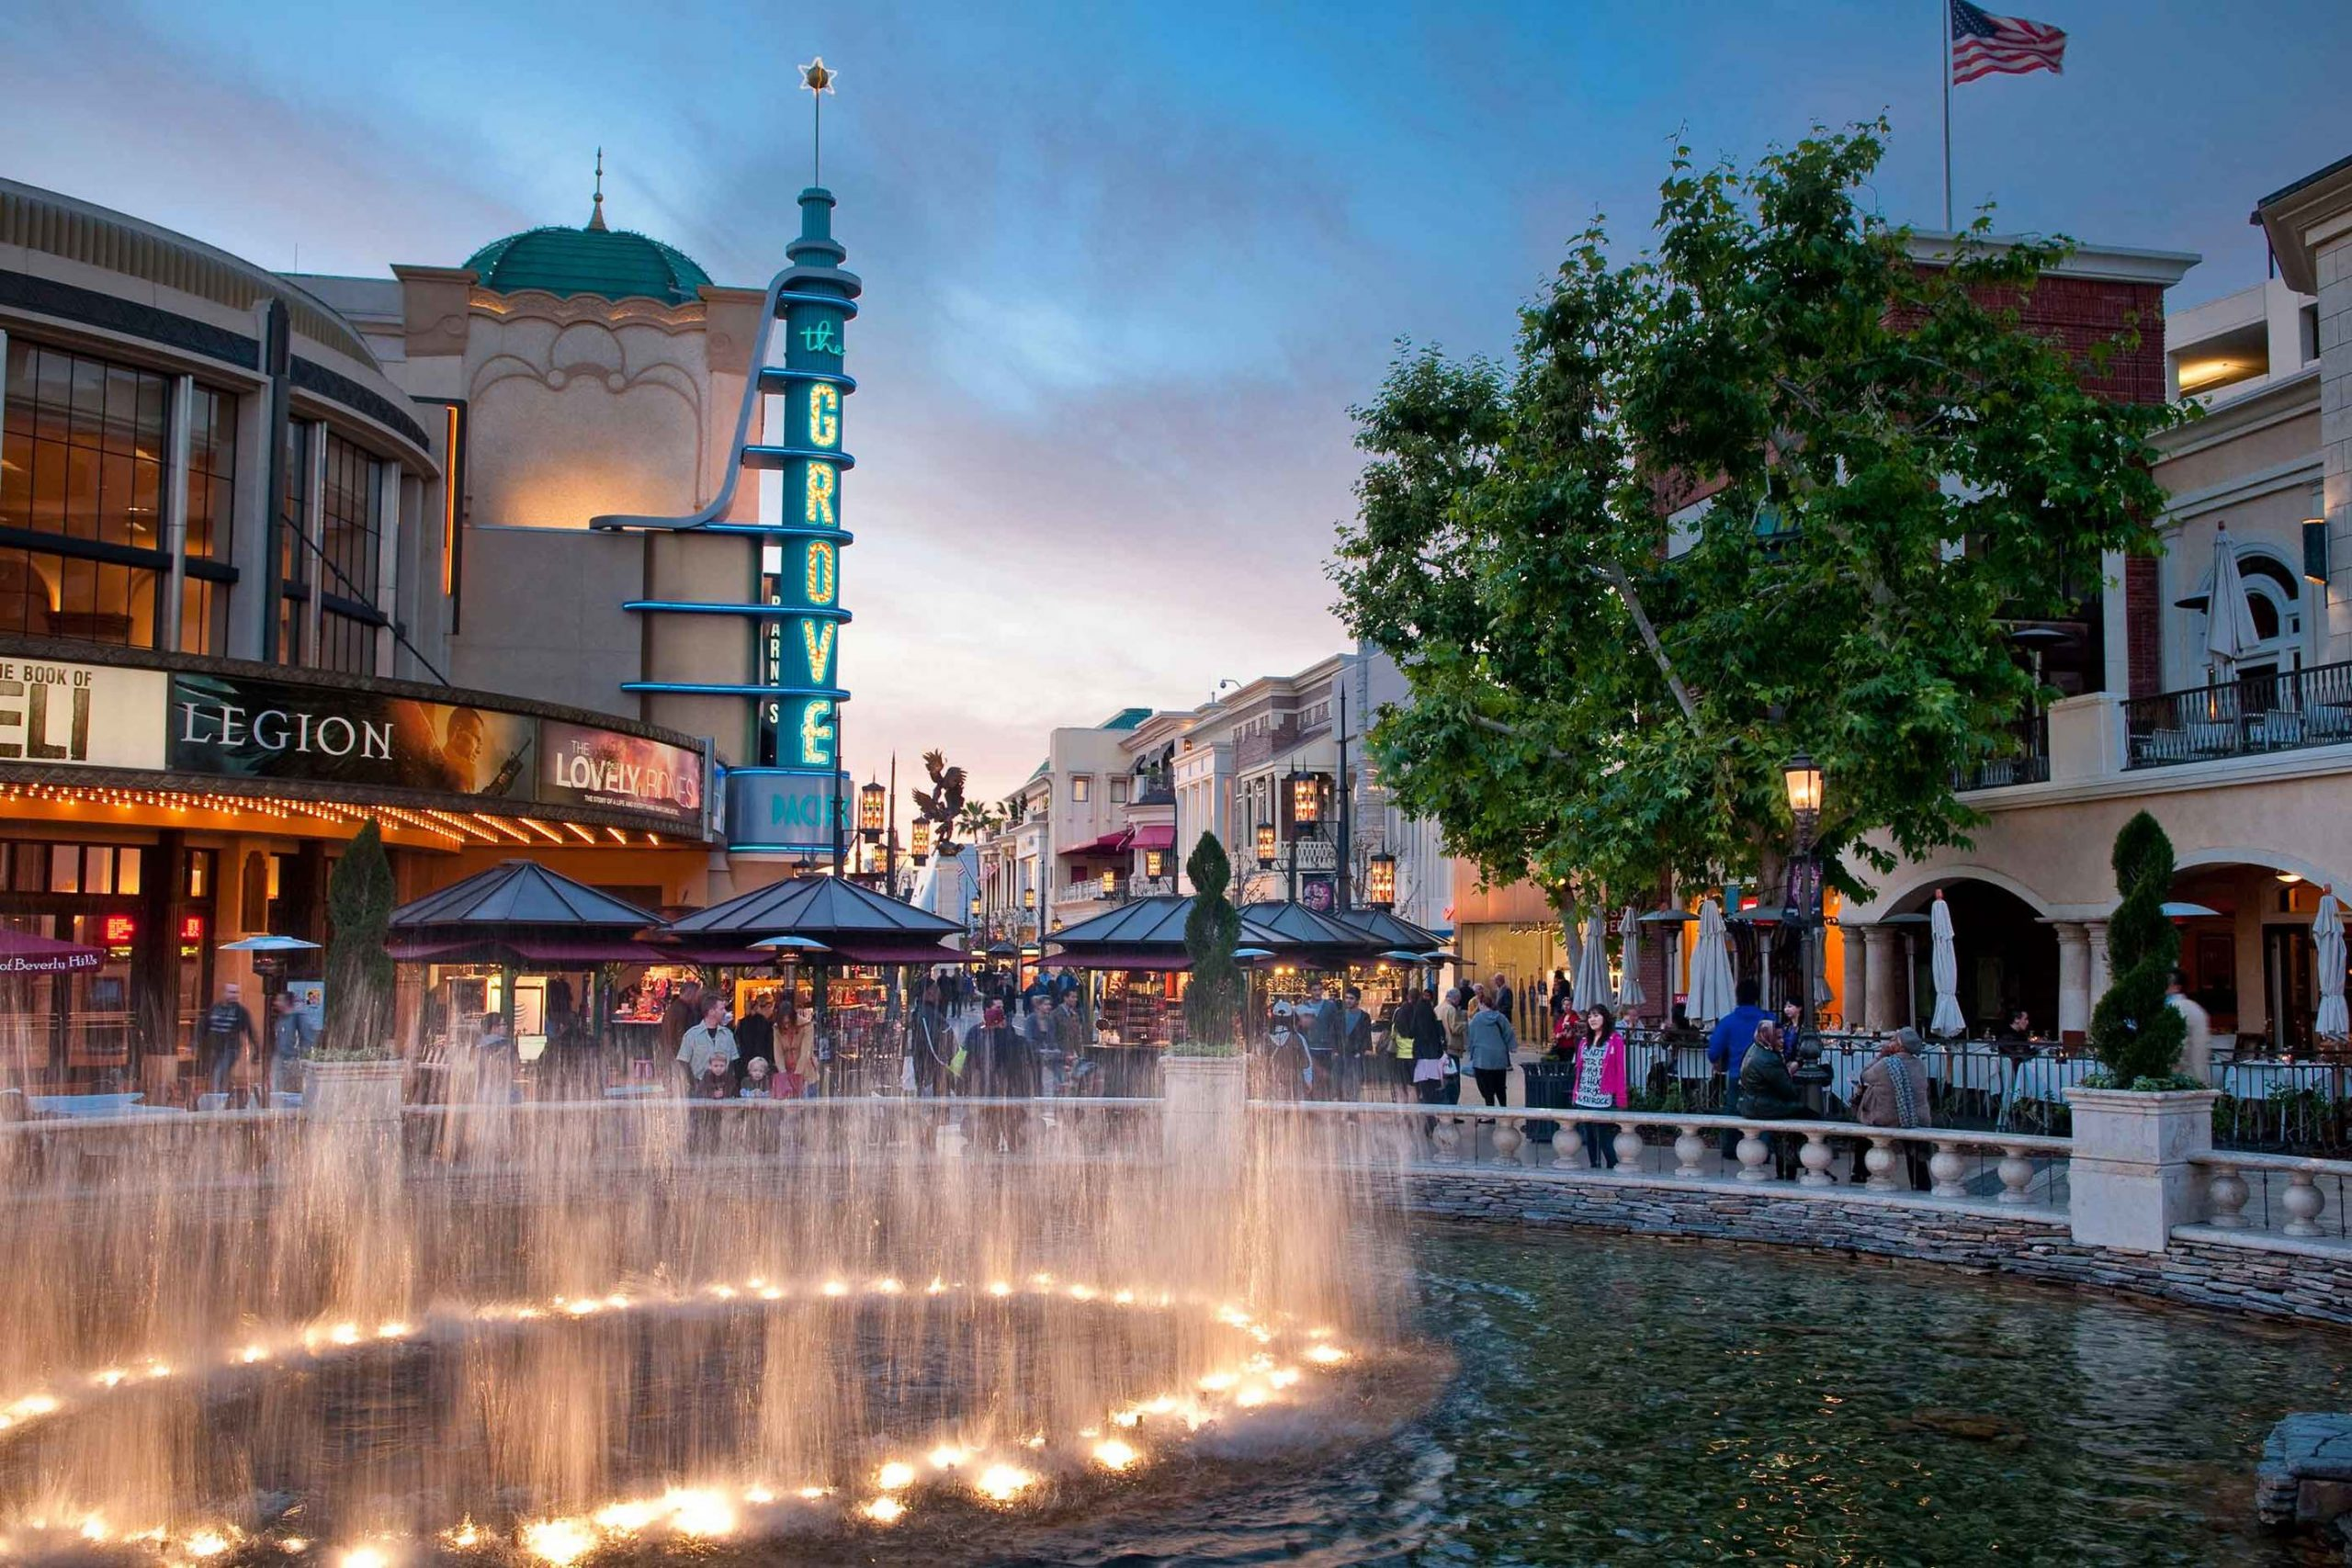 The Grove Hero shopping center located in downtown Los Angeles with water fountain